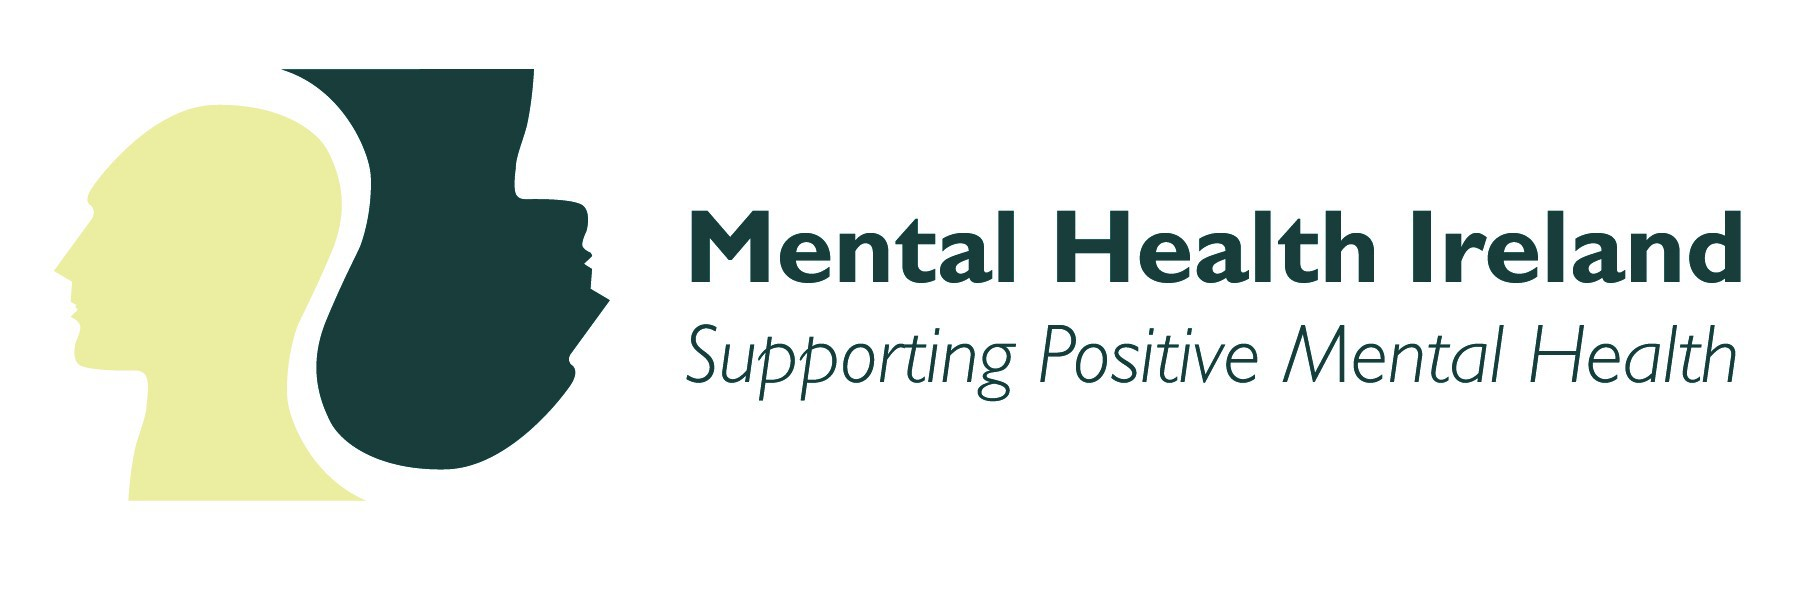 Mental Health Ireland - Kildare, West Dublin & West Wicklow